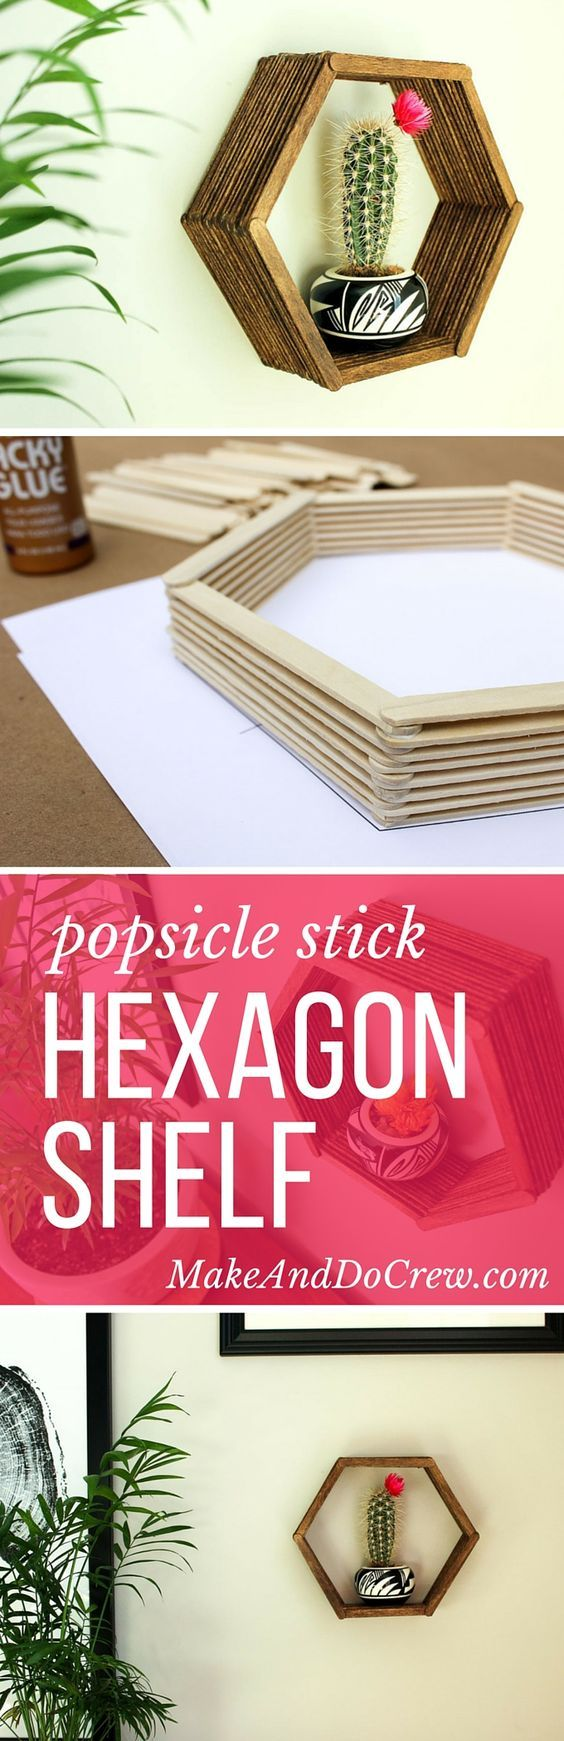 Popsicle Stick Hexagon Shelf — Easy DIY Wall Art